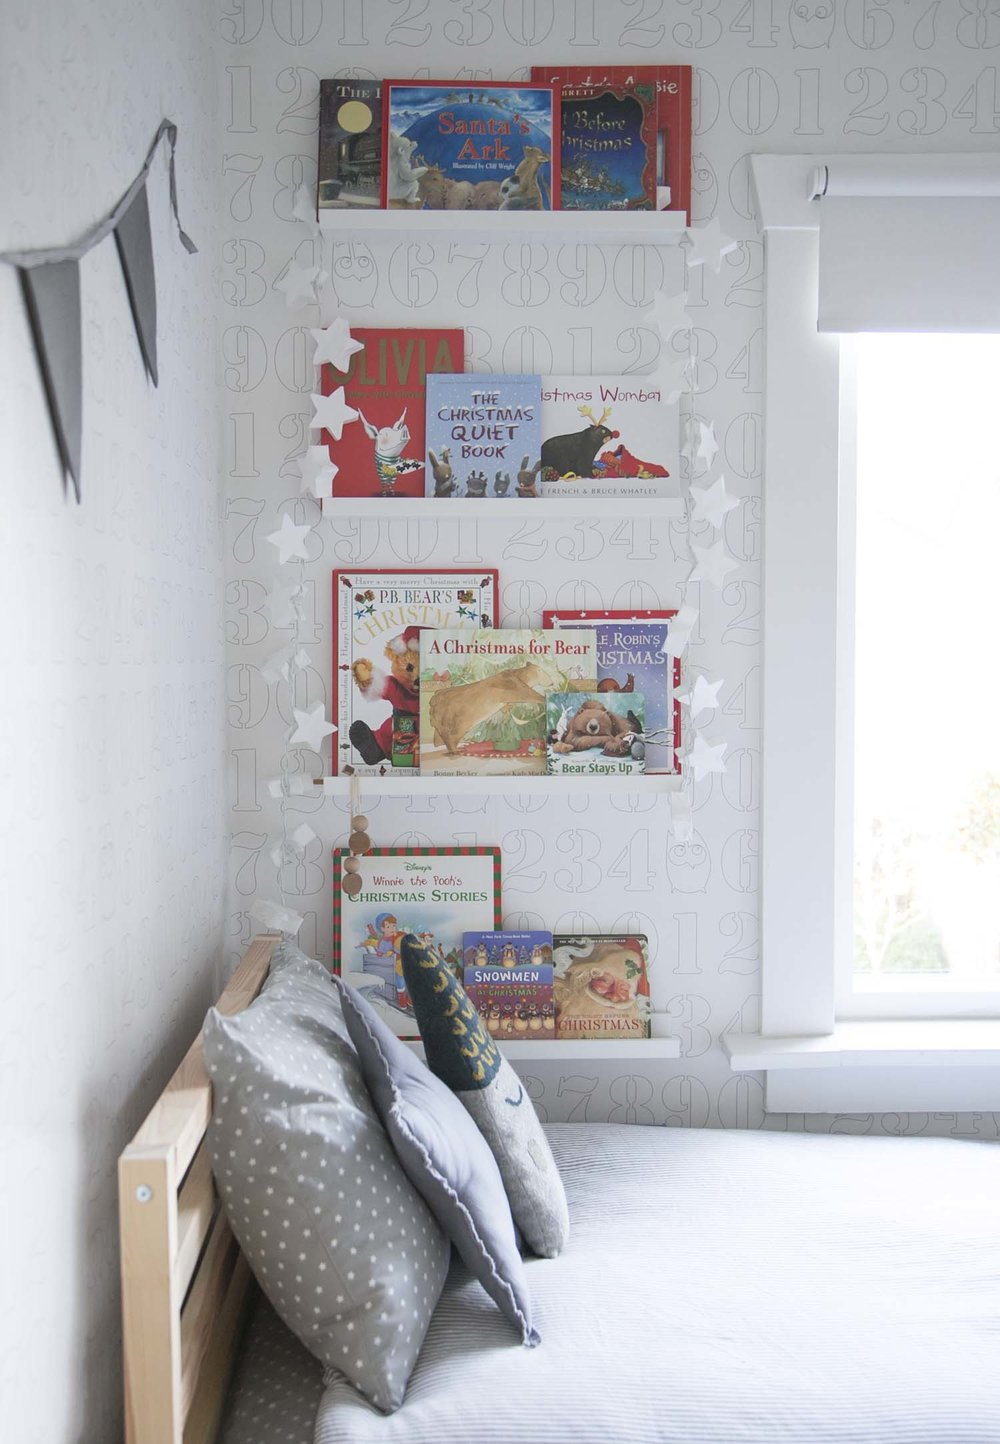 Kids room with Christmas books on shelf